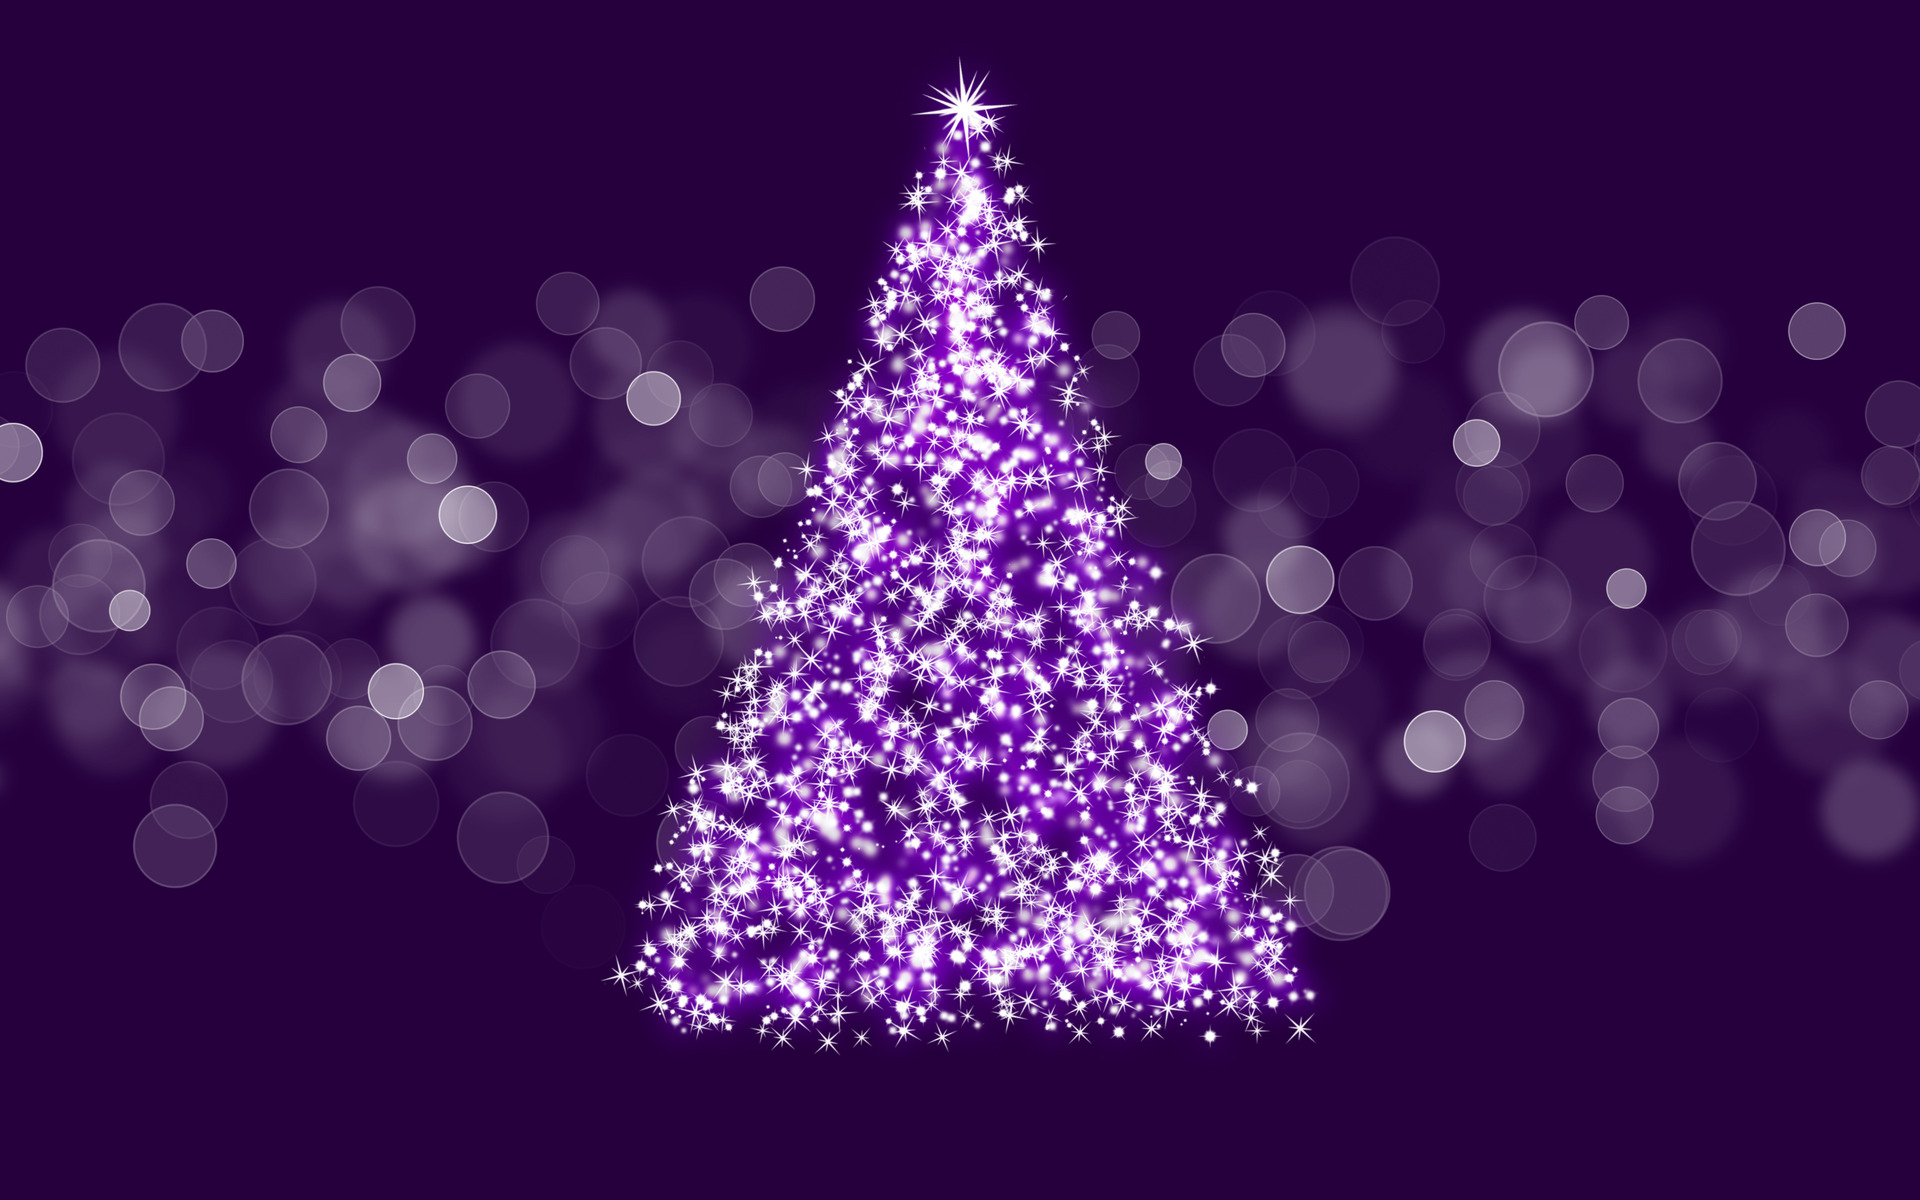 Sparkling Christmas tree wallpaper 15931 1920x1200